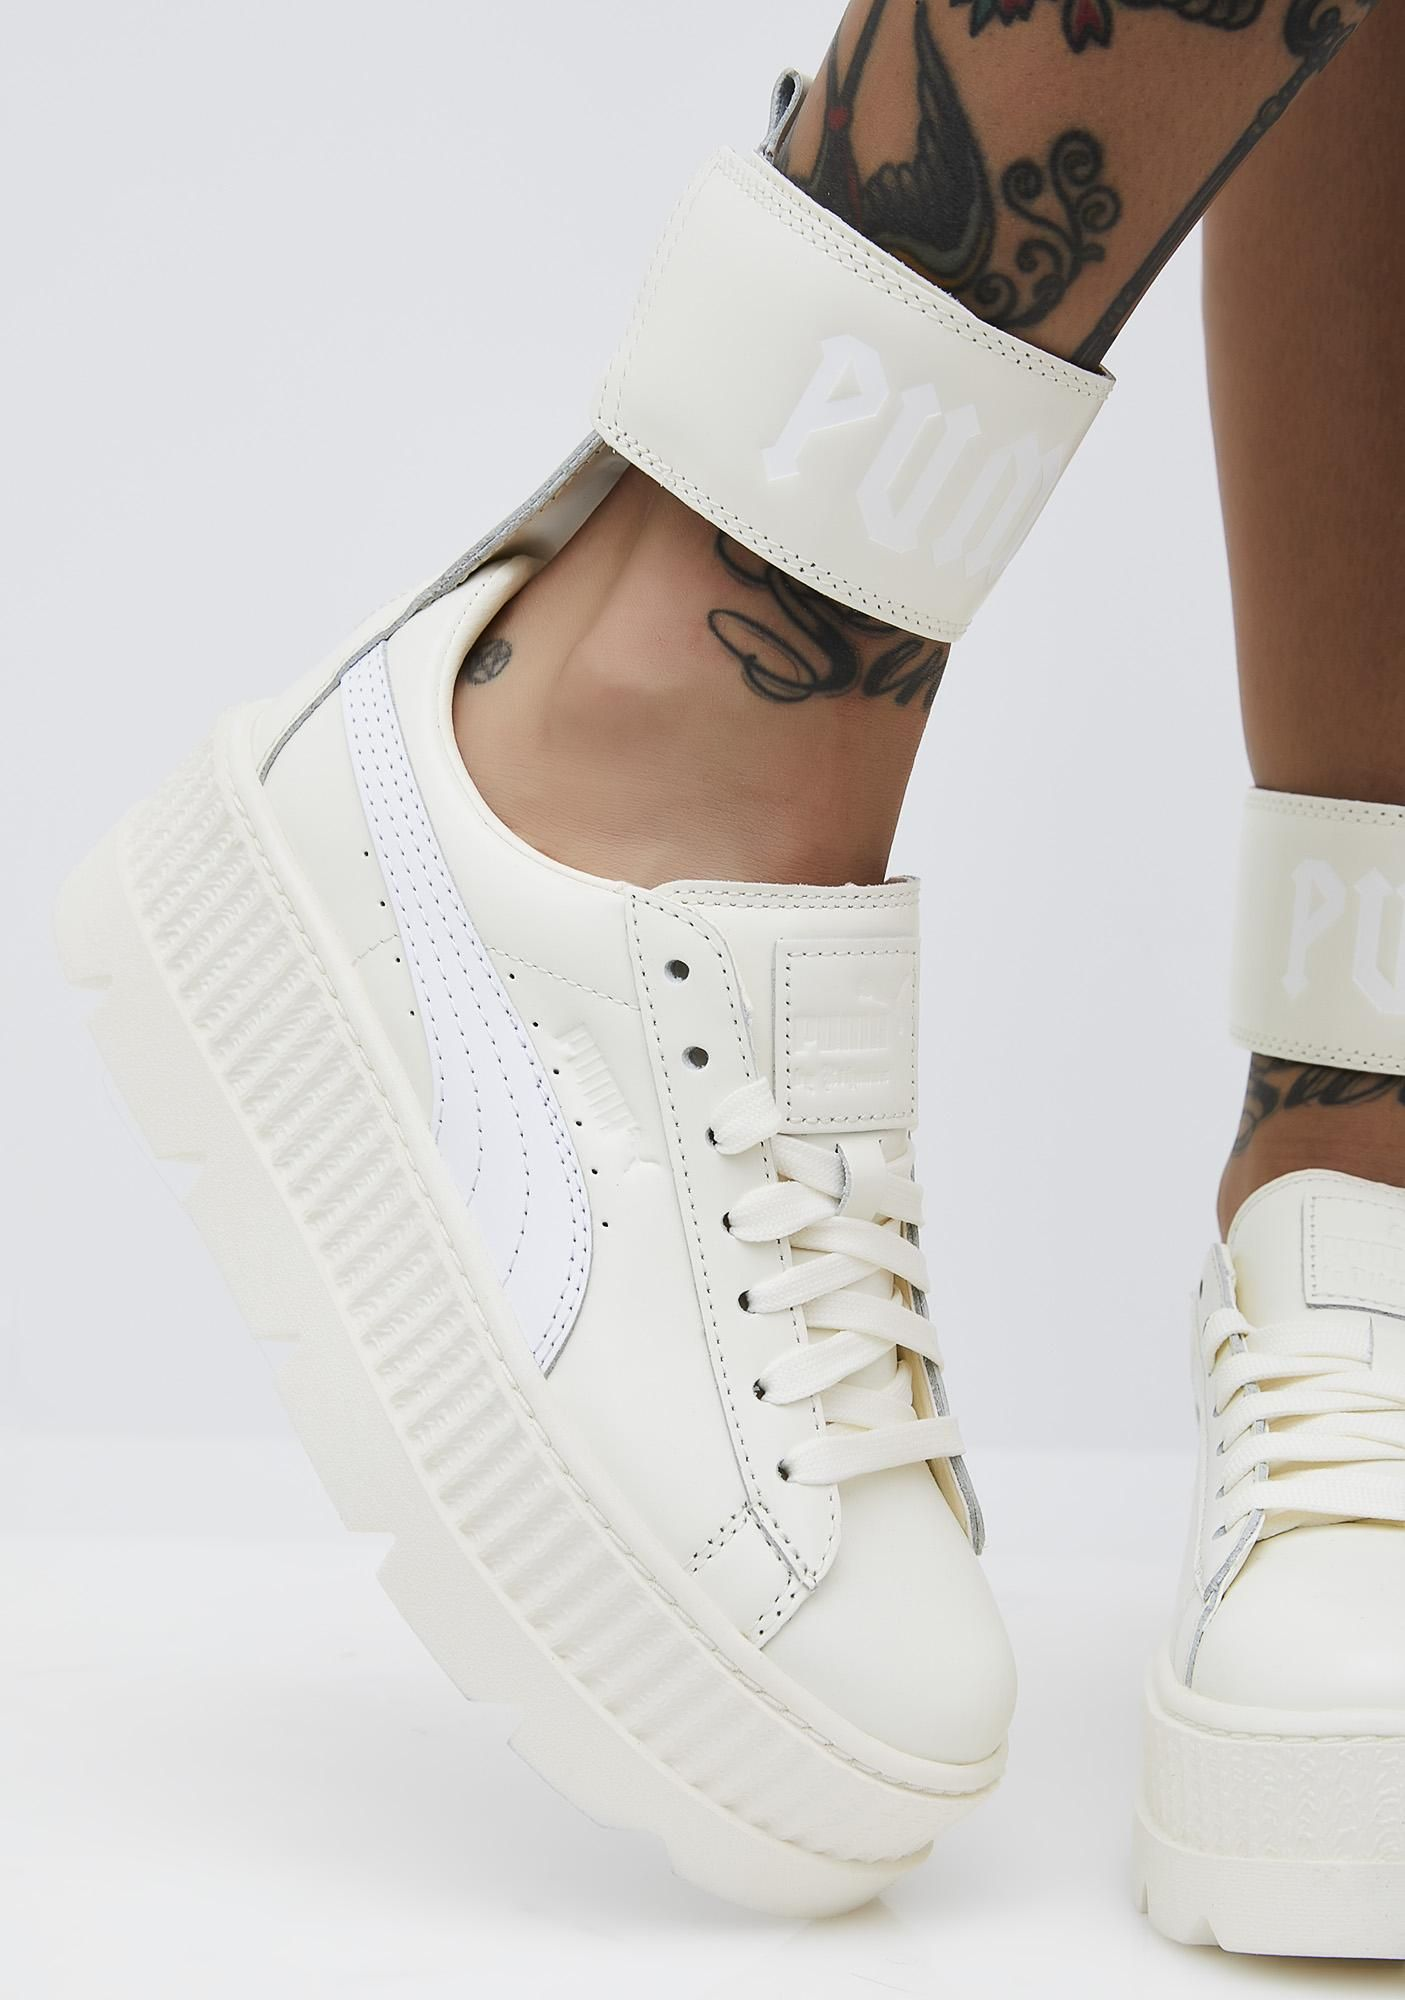 PUMA Vanilla FENTY PUMA by Rihanna Ankle Strap Sneaker will keep you  lookin  dope af! These off-white sneakers have thikk platform soles and an  attached ... 25315a8e3